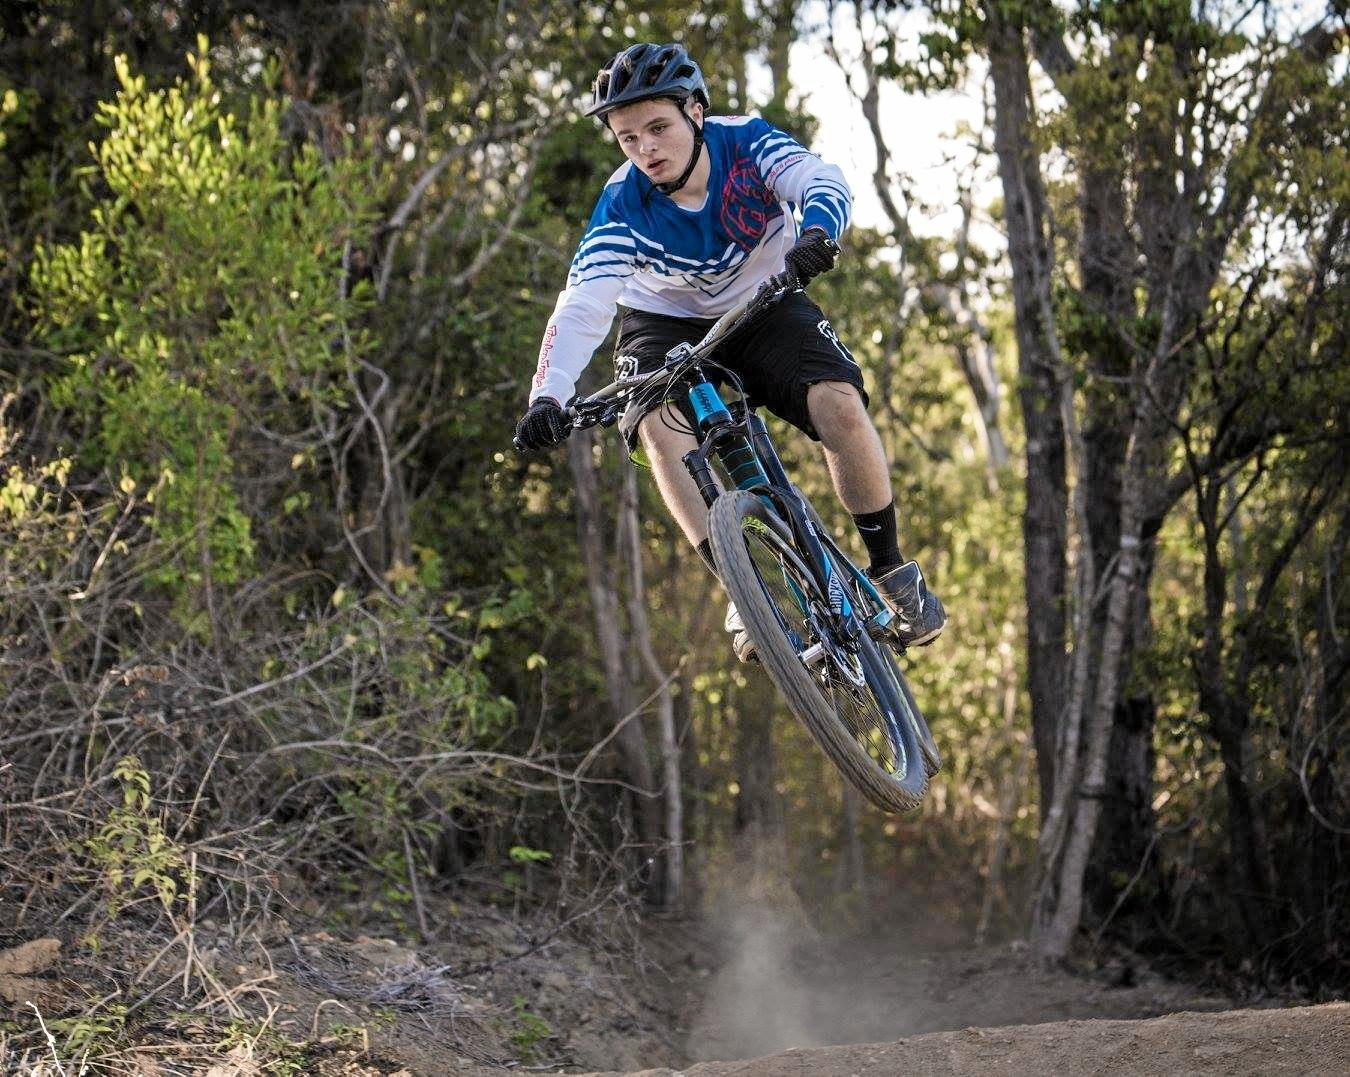 Matthew Hill is well known around Rockhampton, especially in the mountain biking community. The 19-year-old came off his bike on Frenchville Rd Tuesday and is in an induced coma in a Brisbane hospital.